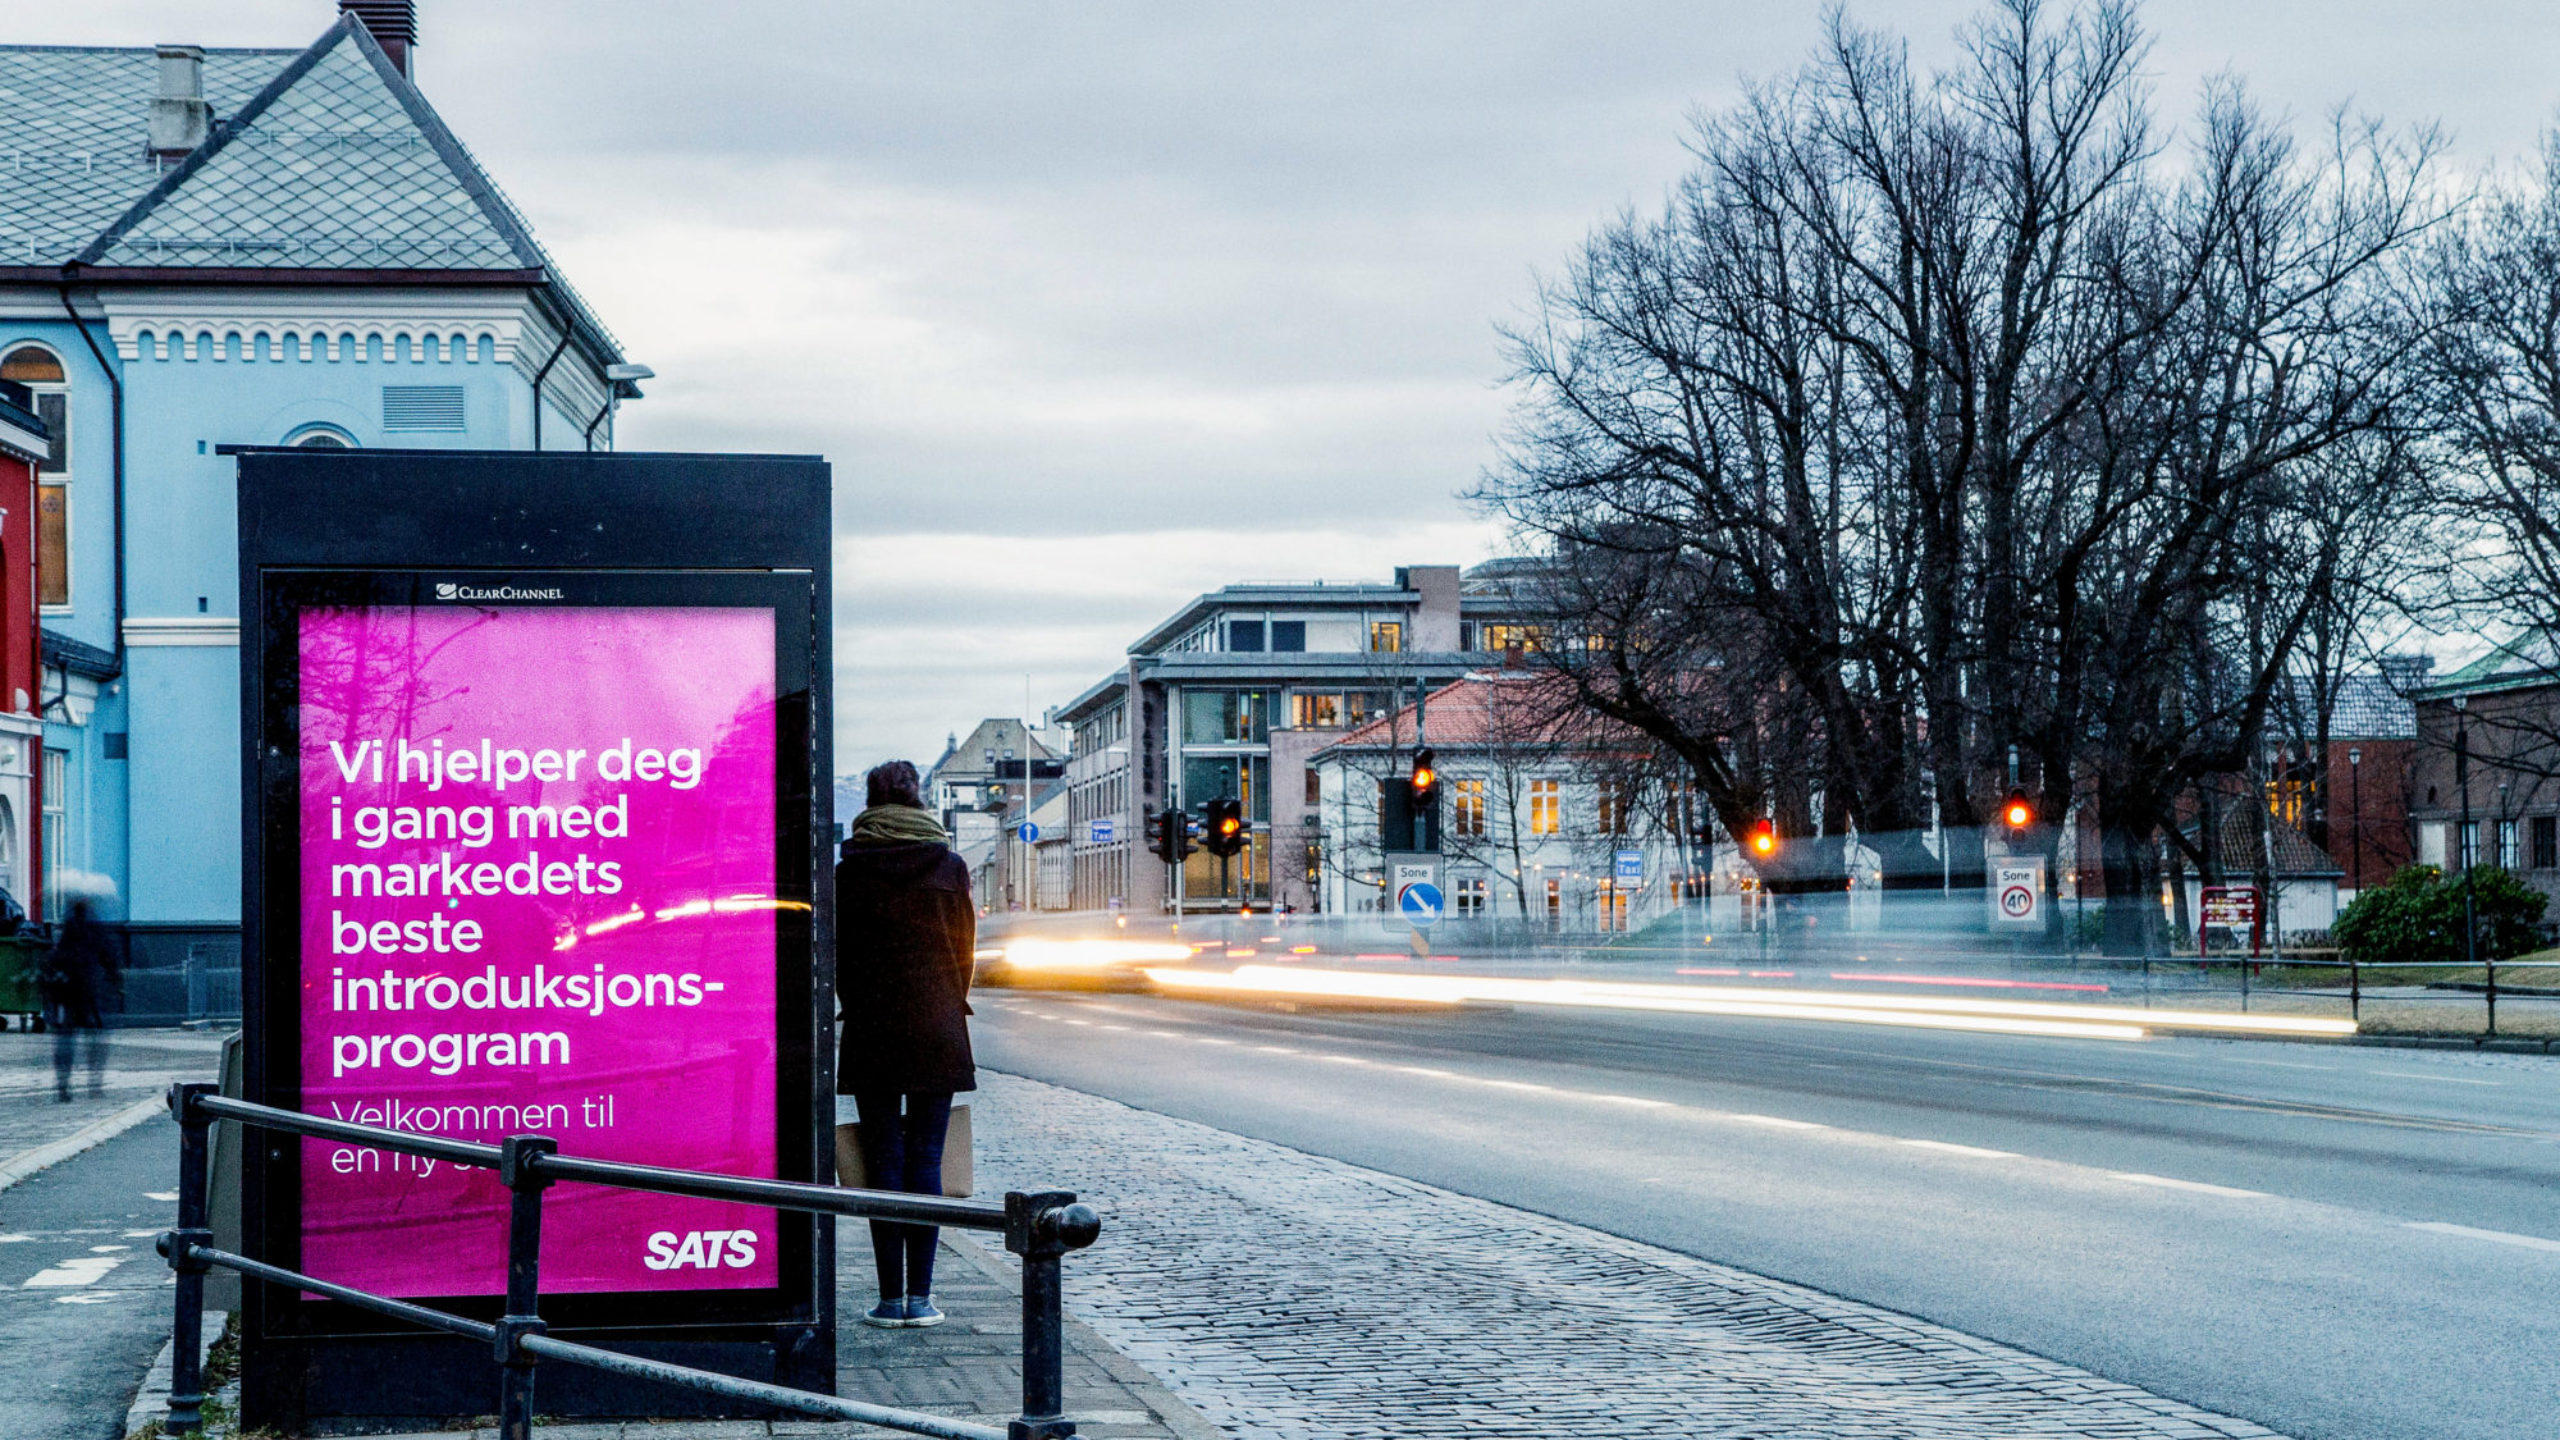 clearchanneltrondheim-070114-2926090114-e1461672338700.jpg